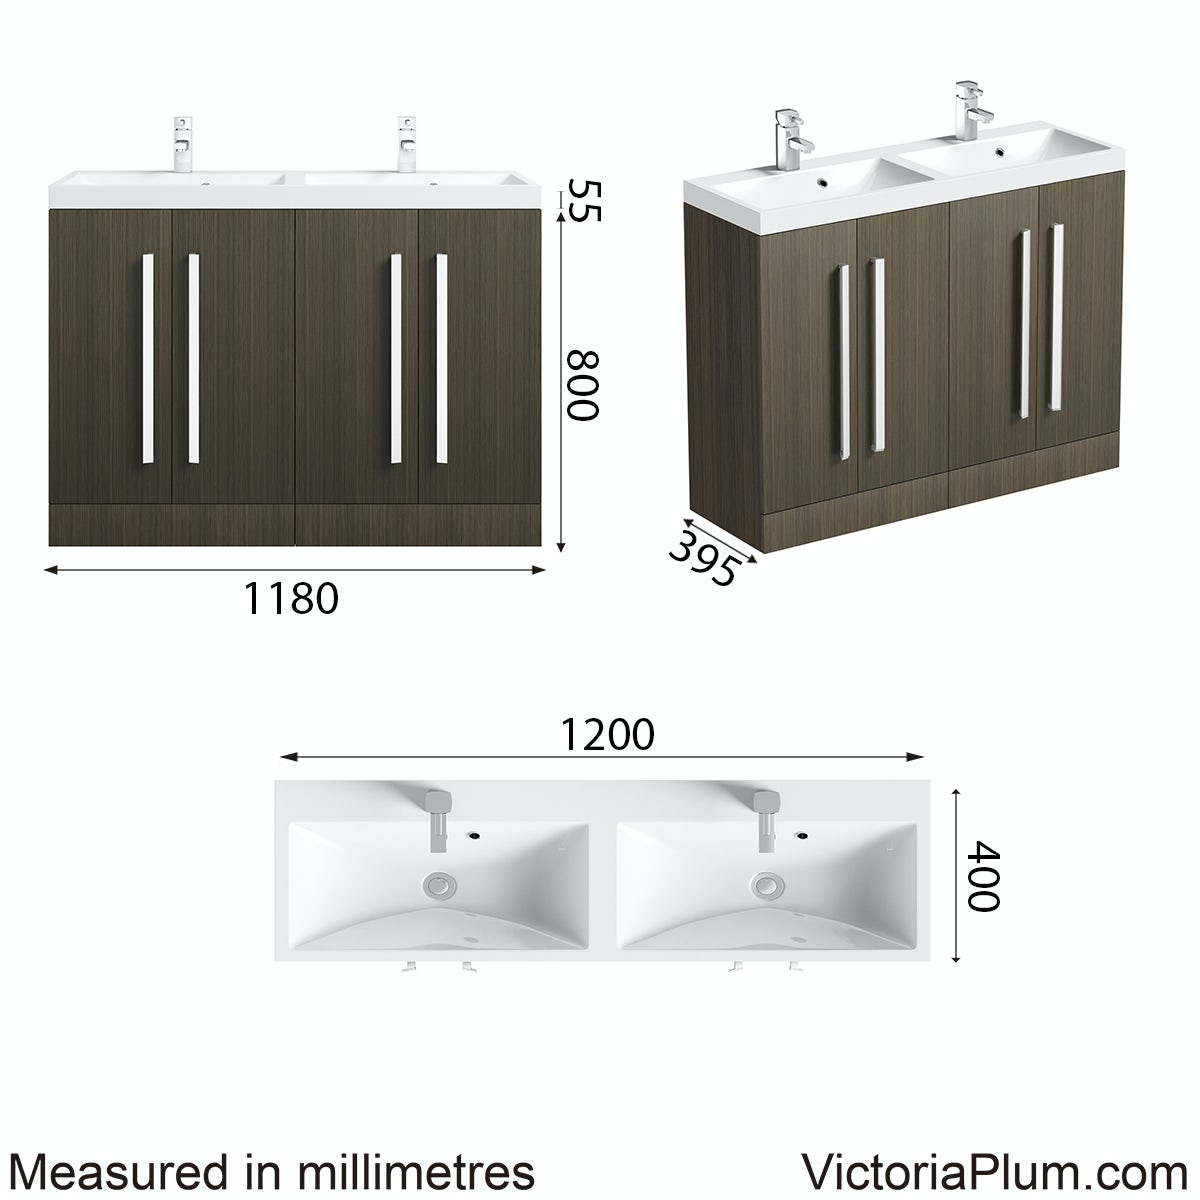 Dimensions for Orchard Wye walnut double basin unit 1200mm